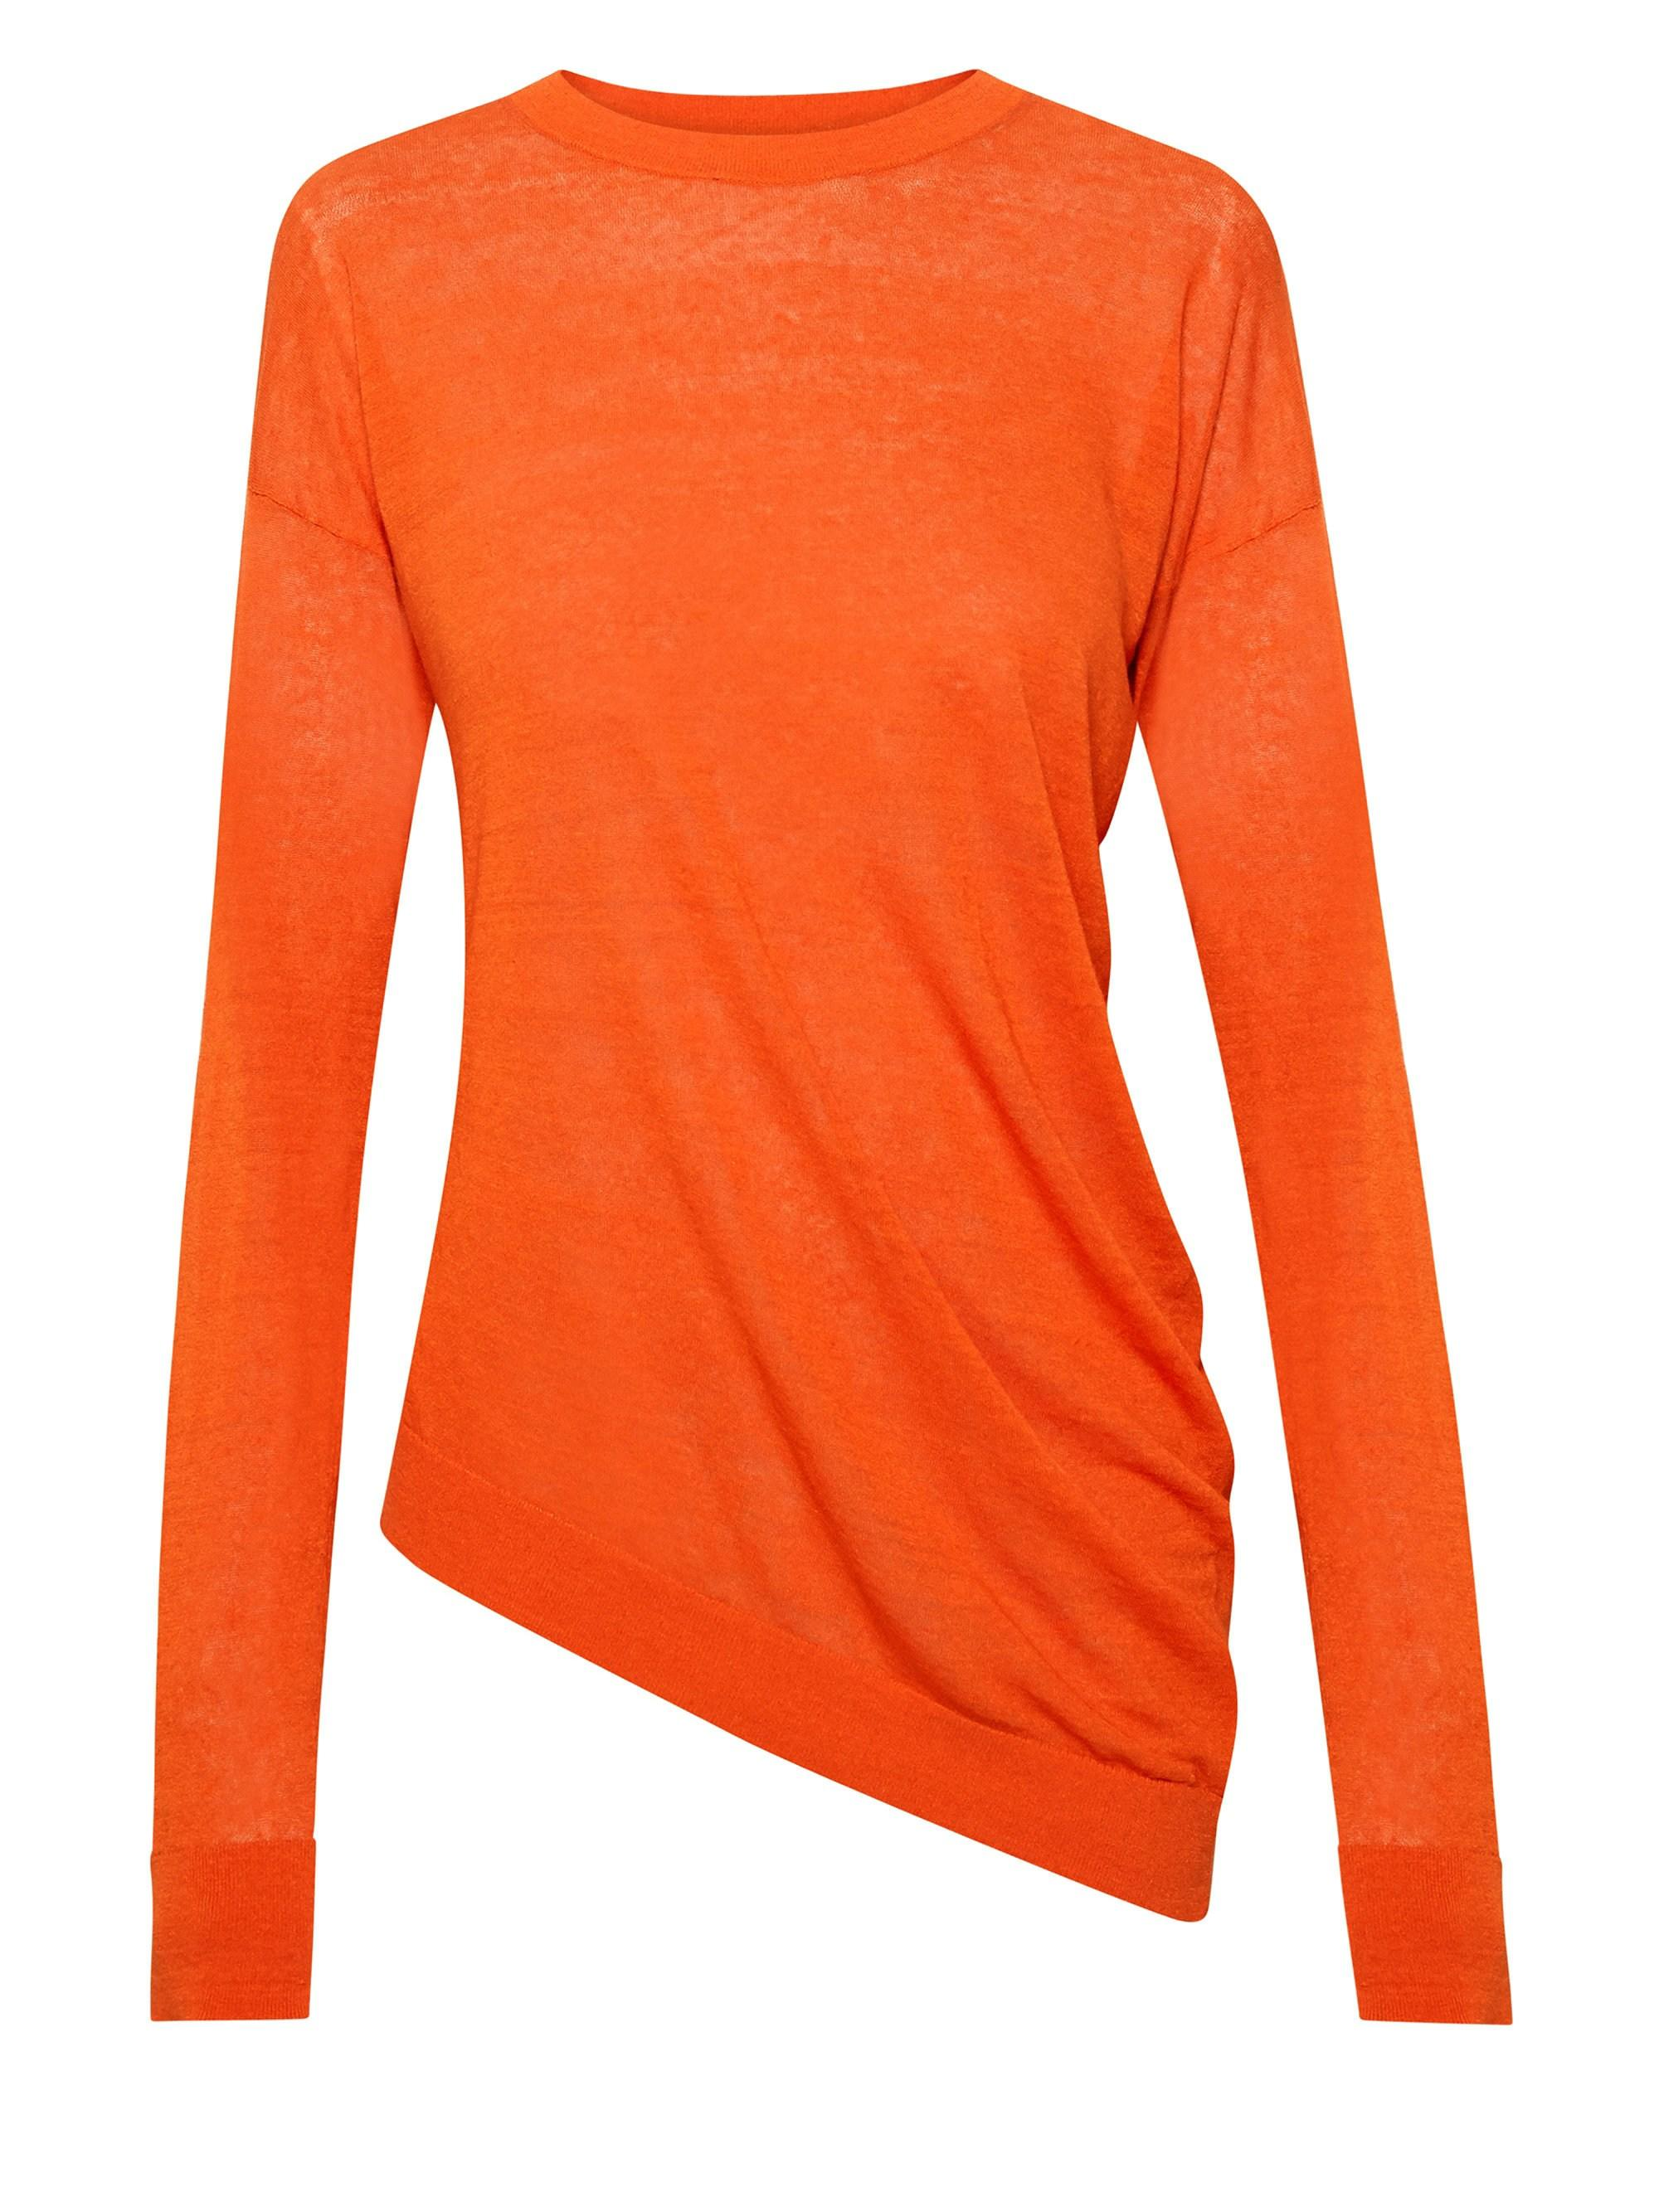 4d134b0087 Theory Women's Sag Harbor Asymmetric Long-sleeve Top - Coral in ...